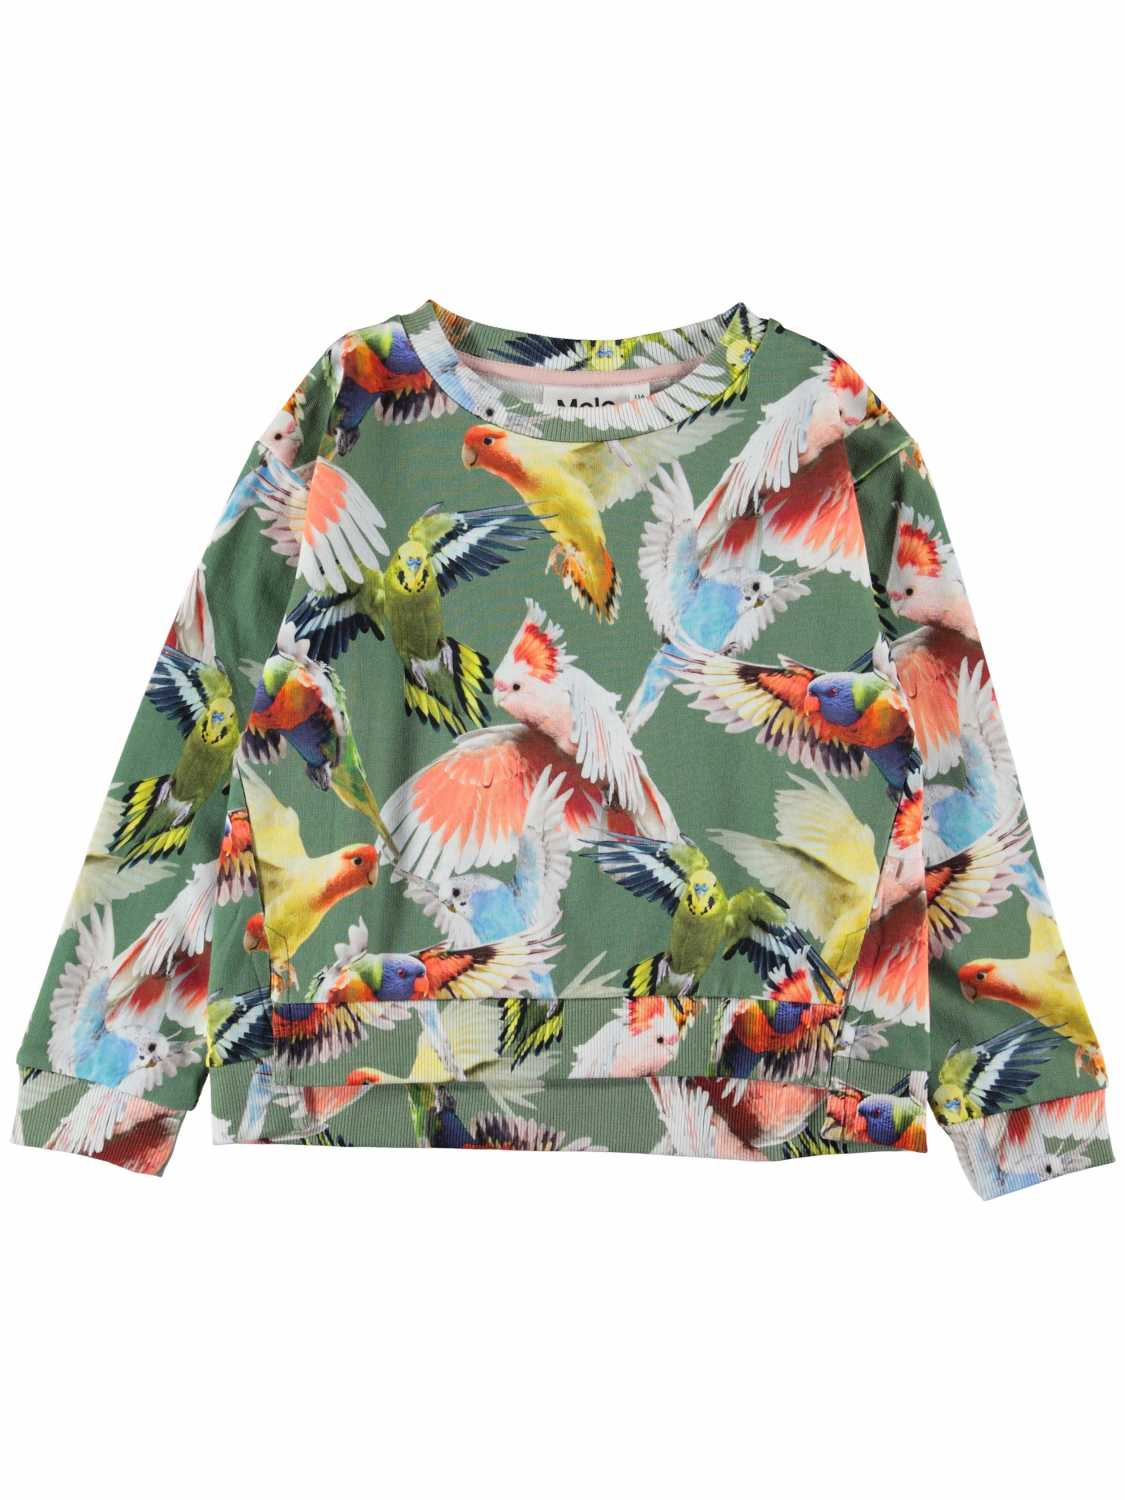 Molo Sweater - meisjes - All over print -